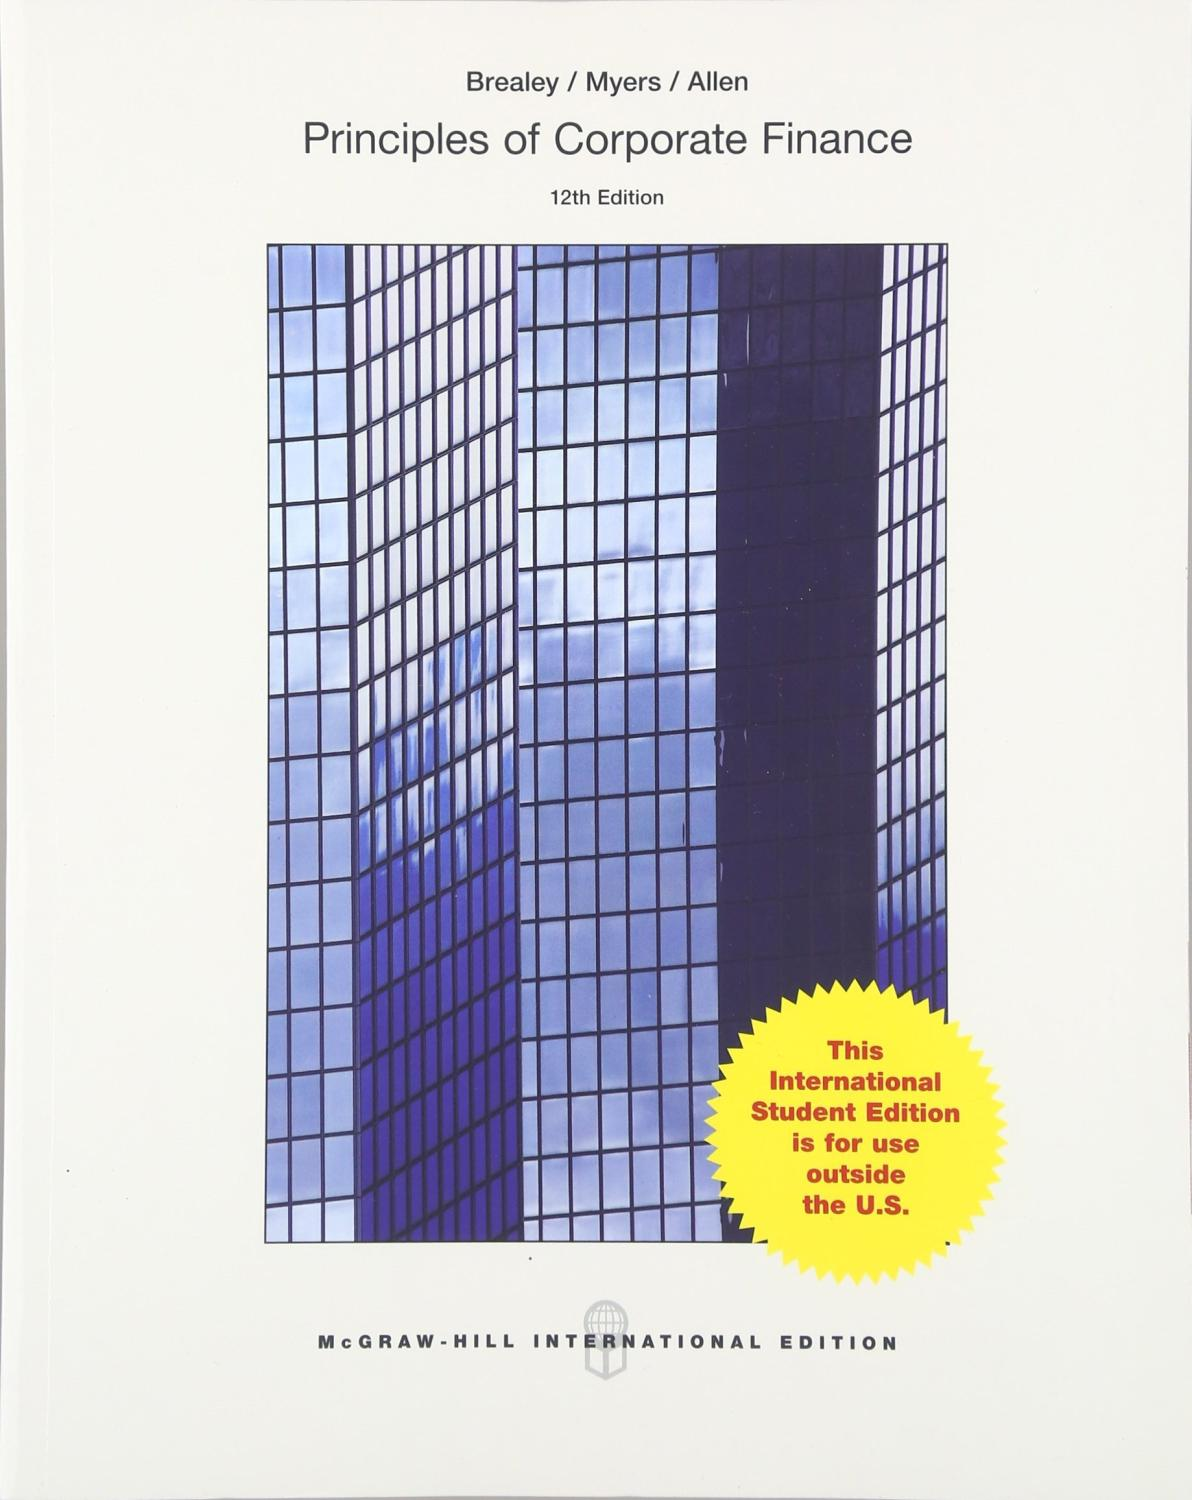 corporate finance brealey 10th edition Principles of corporate finance recognized as the market leader,this text blends a clear,distinctive,and modern presentation of financial theory with in-depth analysis and applications this edition is thoroughly updated throughout to include current illustrations of modern financial management techniques and issues.